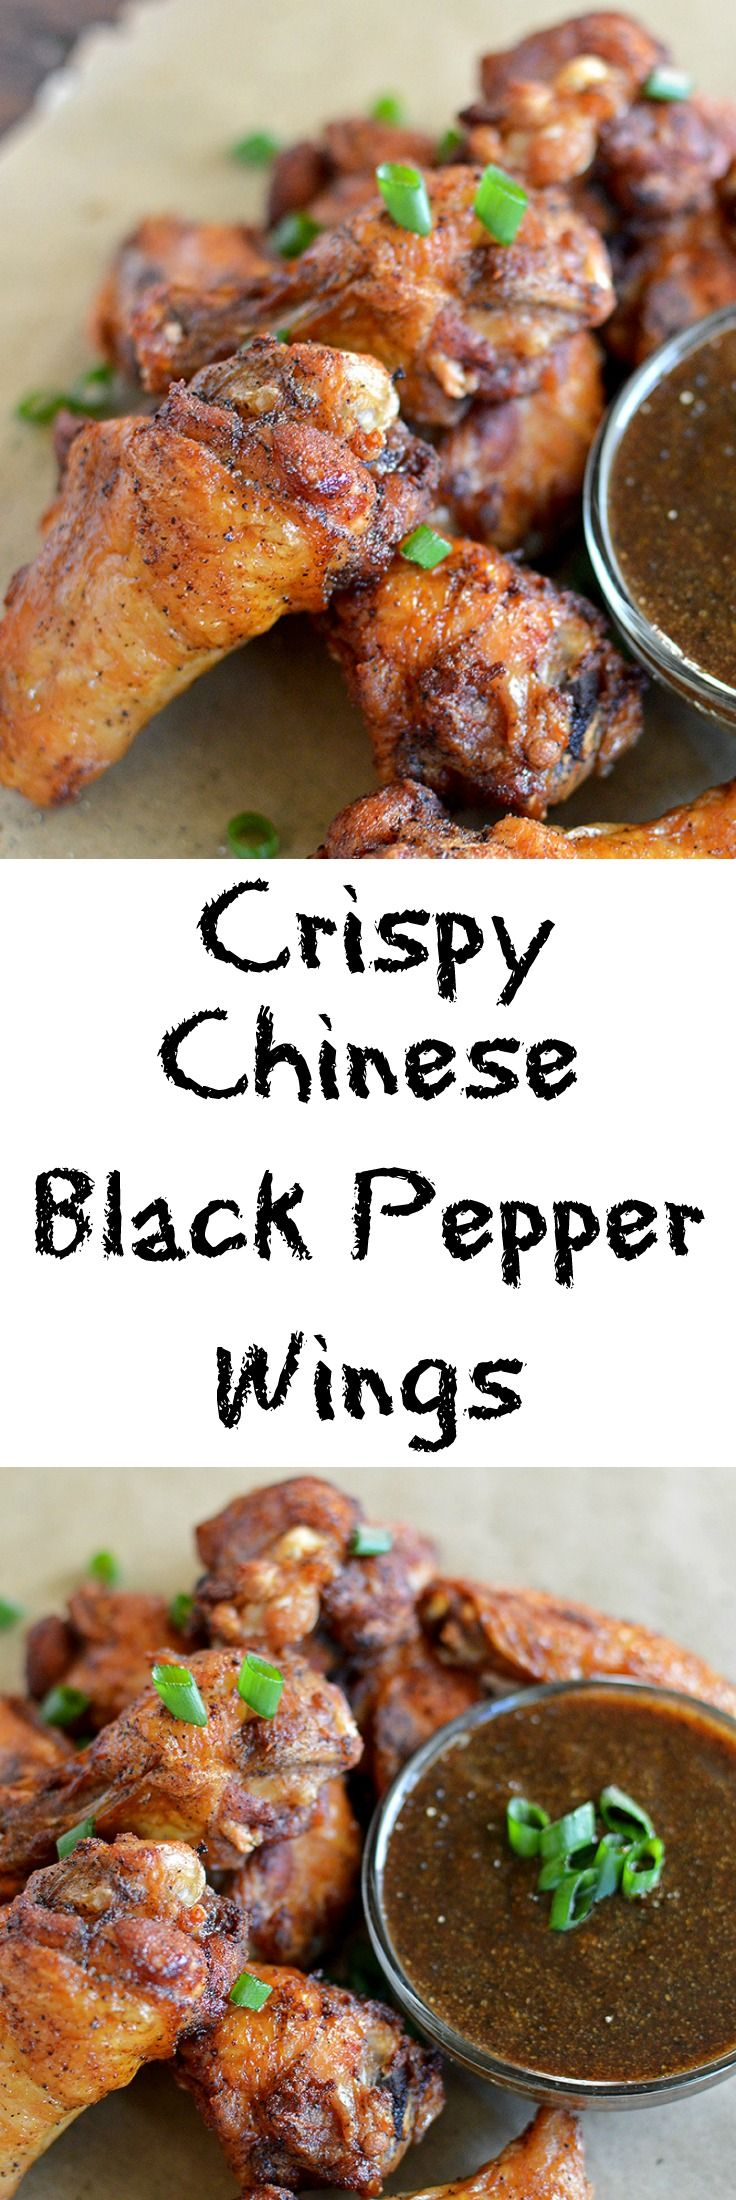 Crispy Chinese Black Peppered Wings…..  A spin on the classic Chinese black peppered chicken dish.